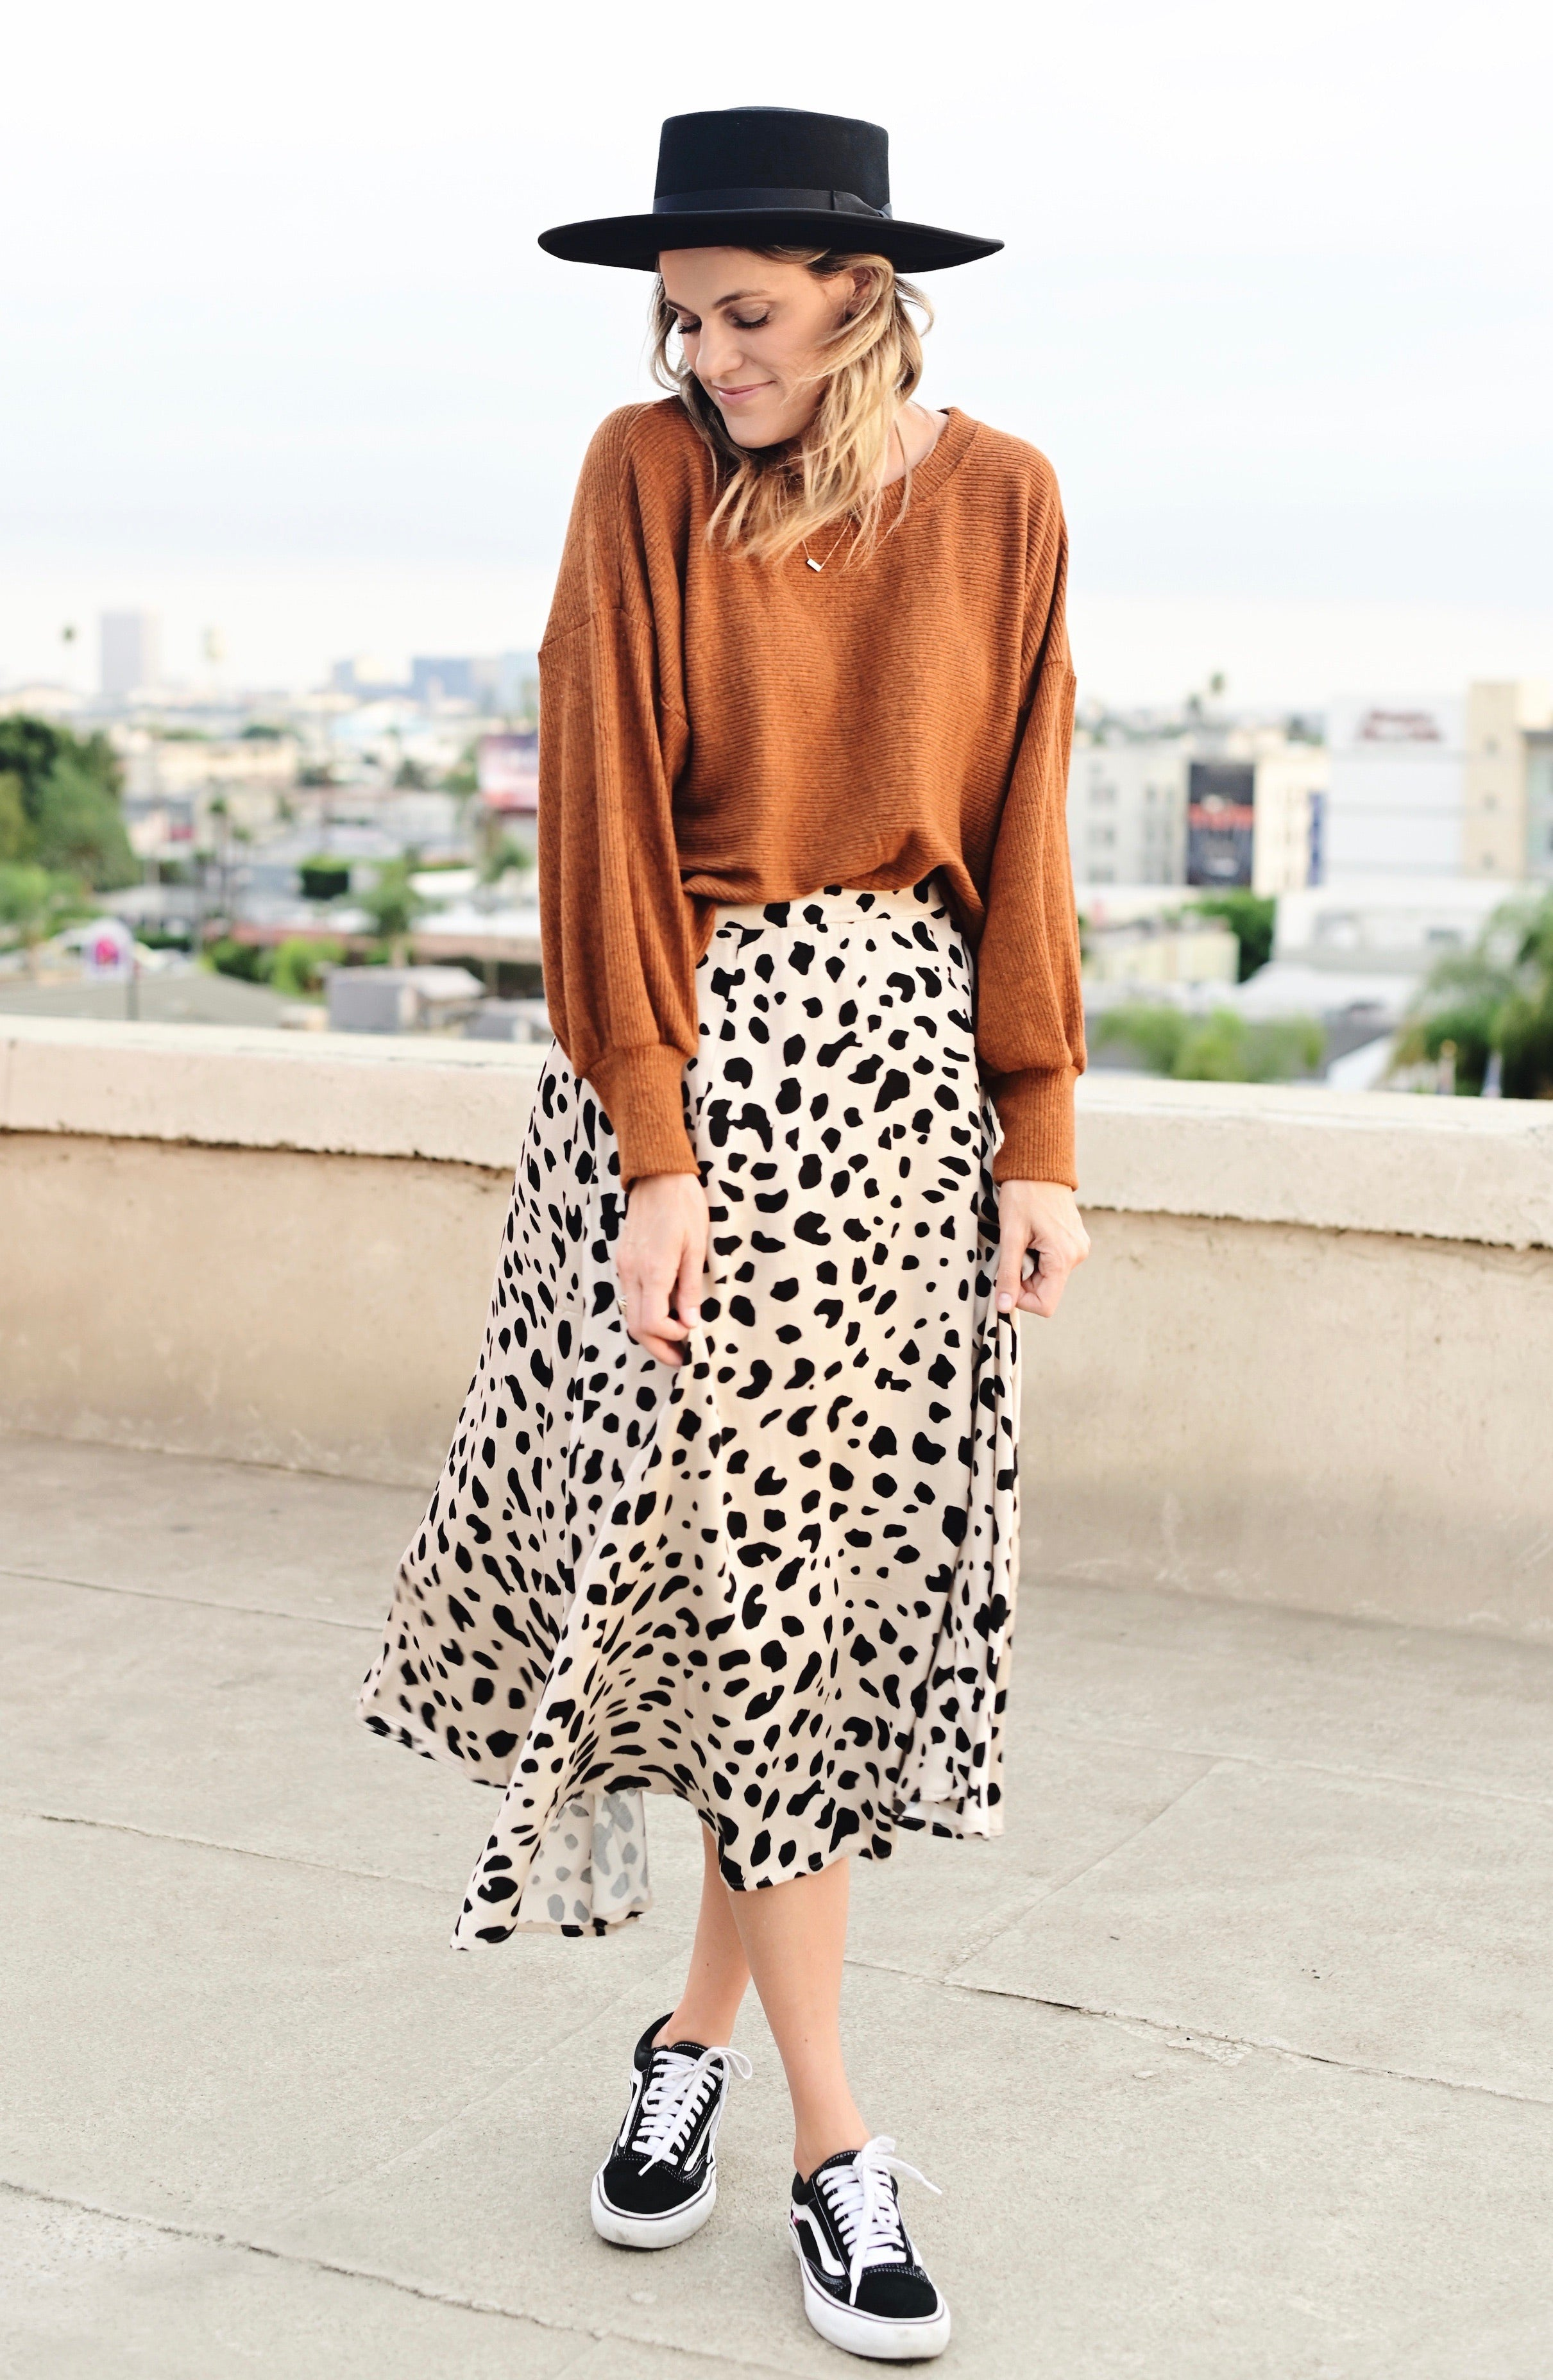 SHOP EVER BOWERY SKIRT